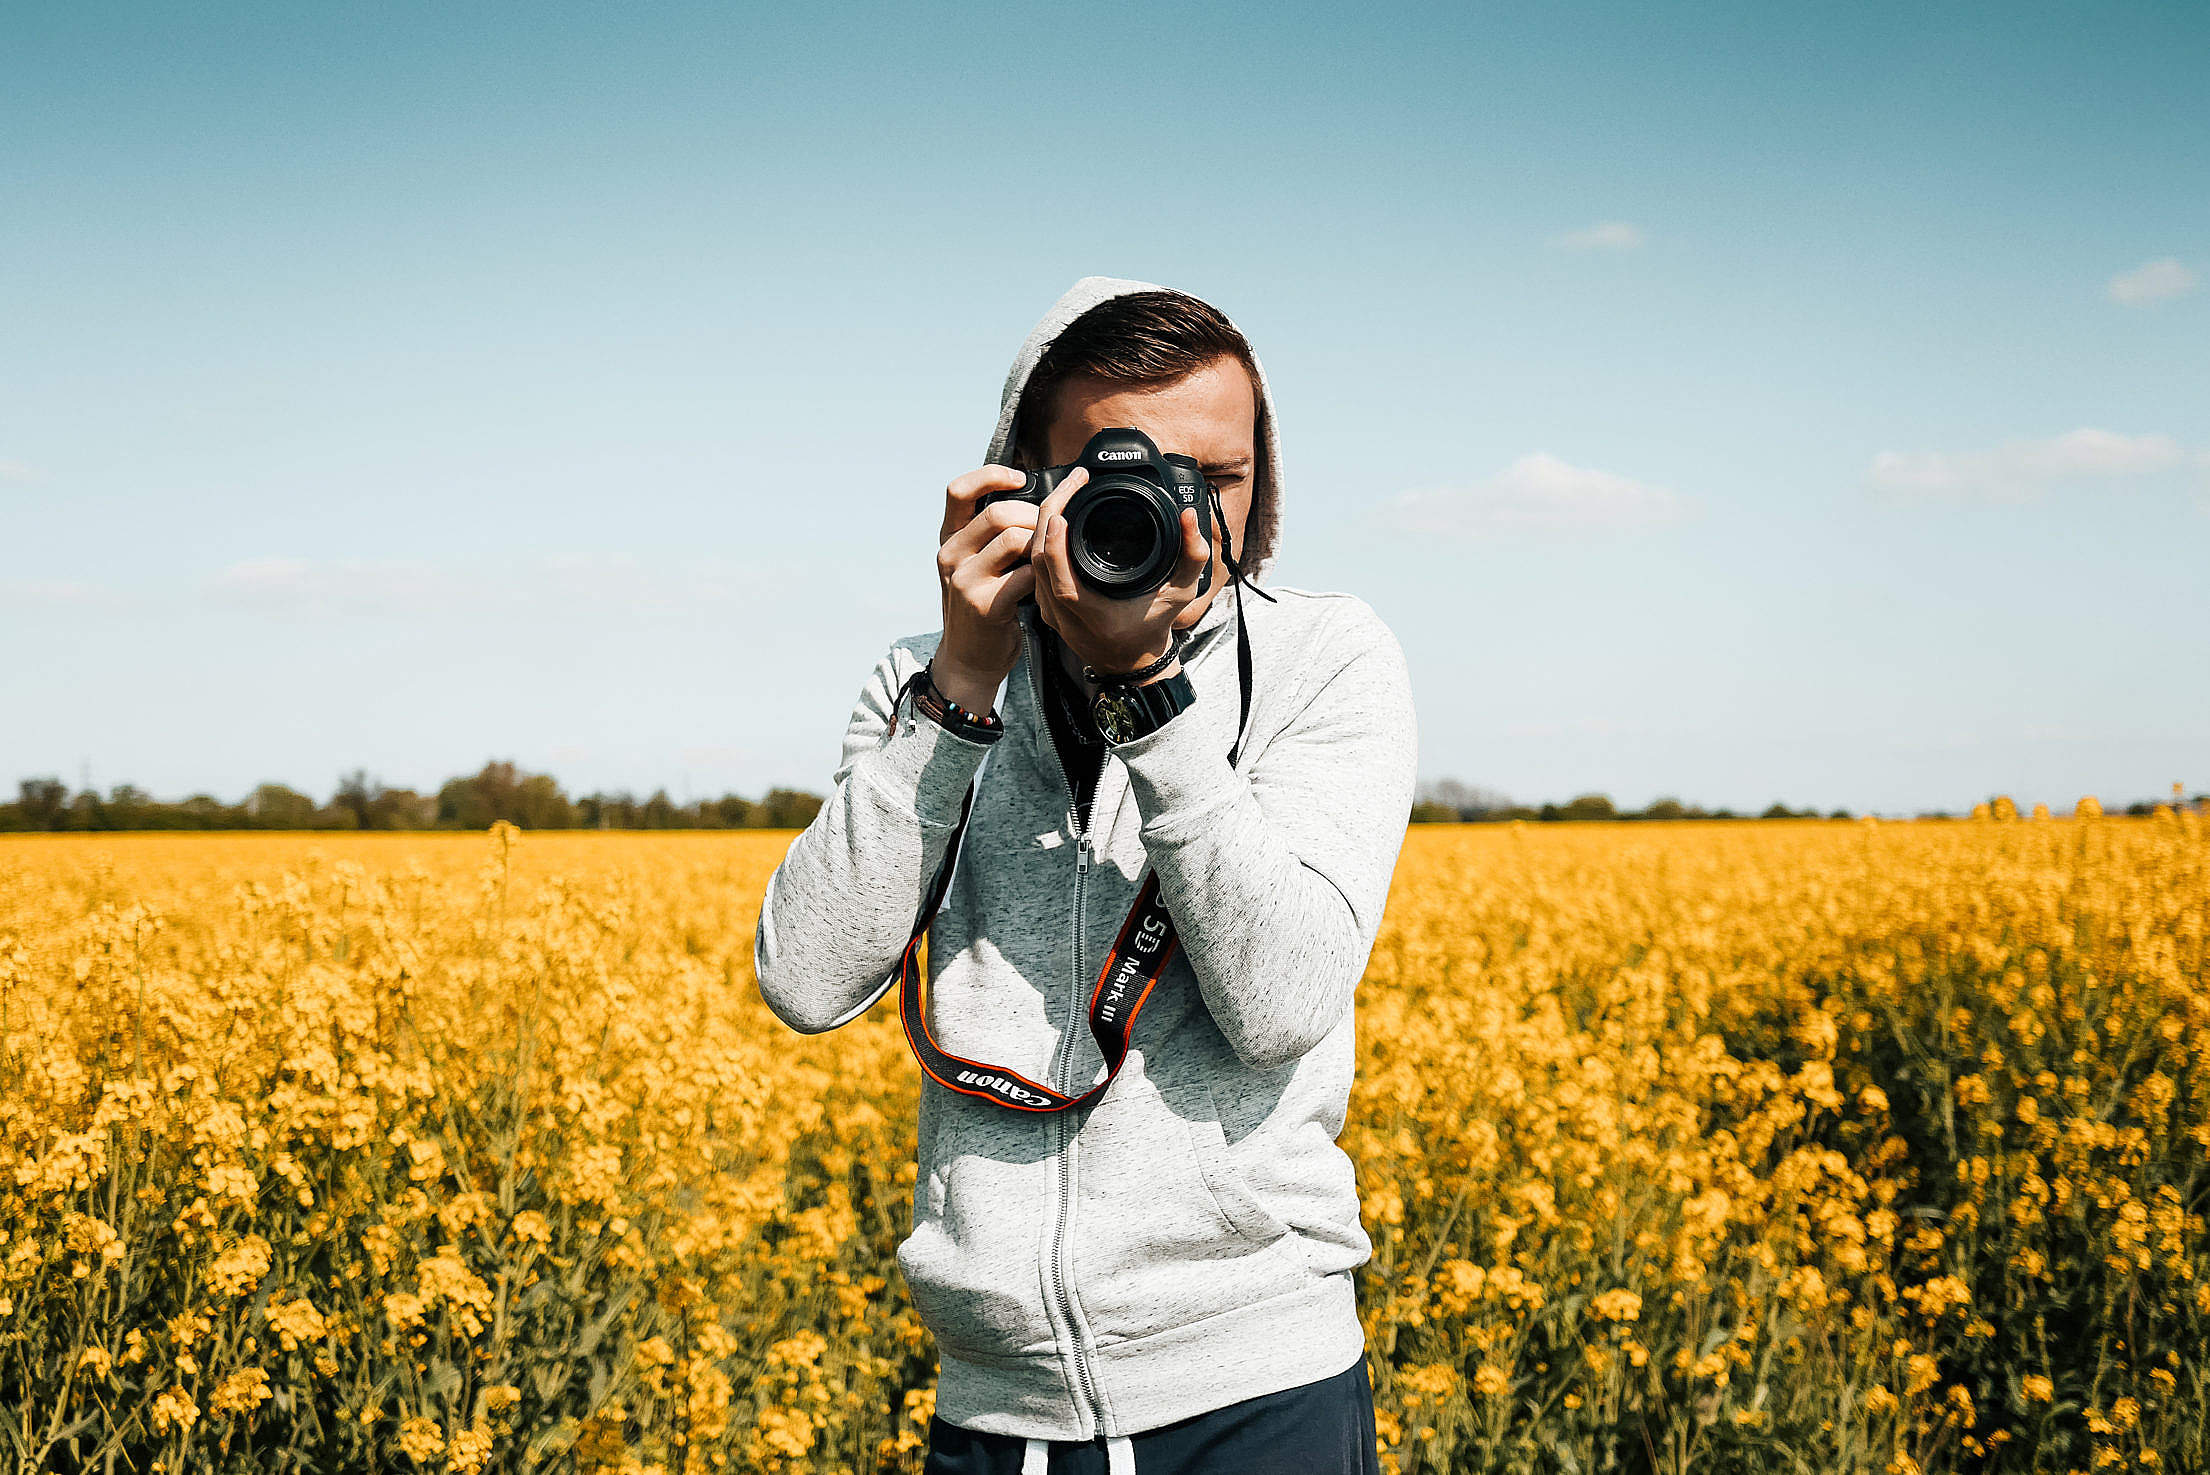 Photographer Taking a Photo in The Field Free Stock Photo